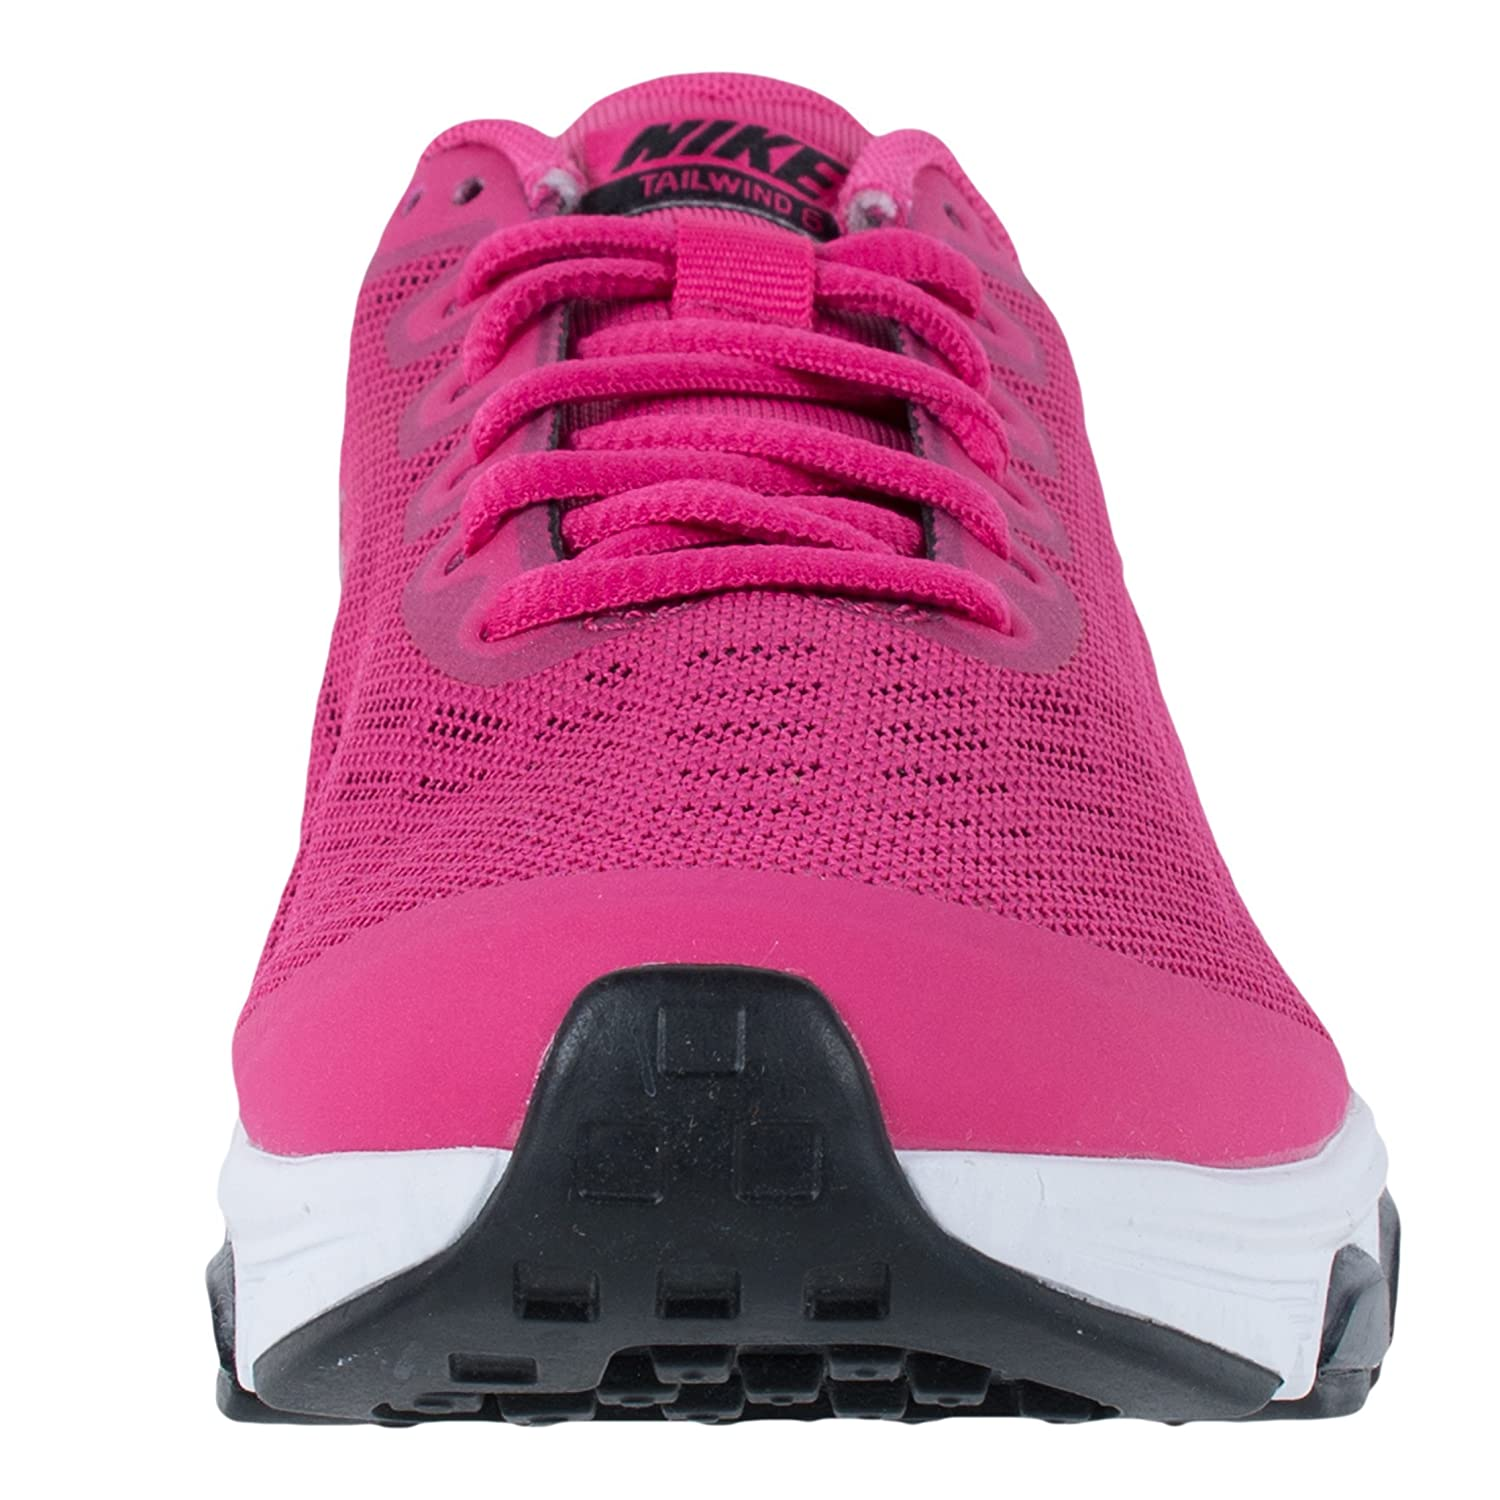 84a18c2446 ... czech amazon nike air max tailwind girls shoes running 25940 43ad8